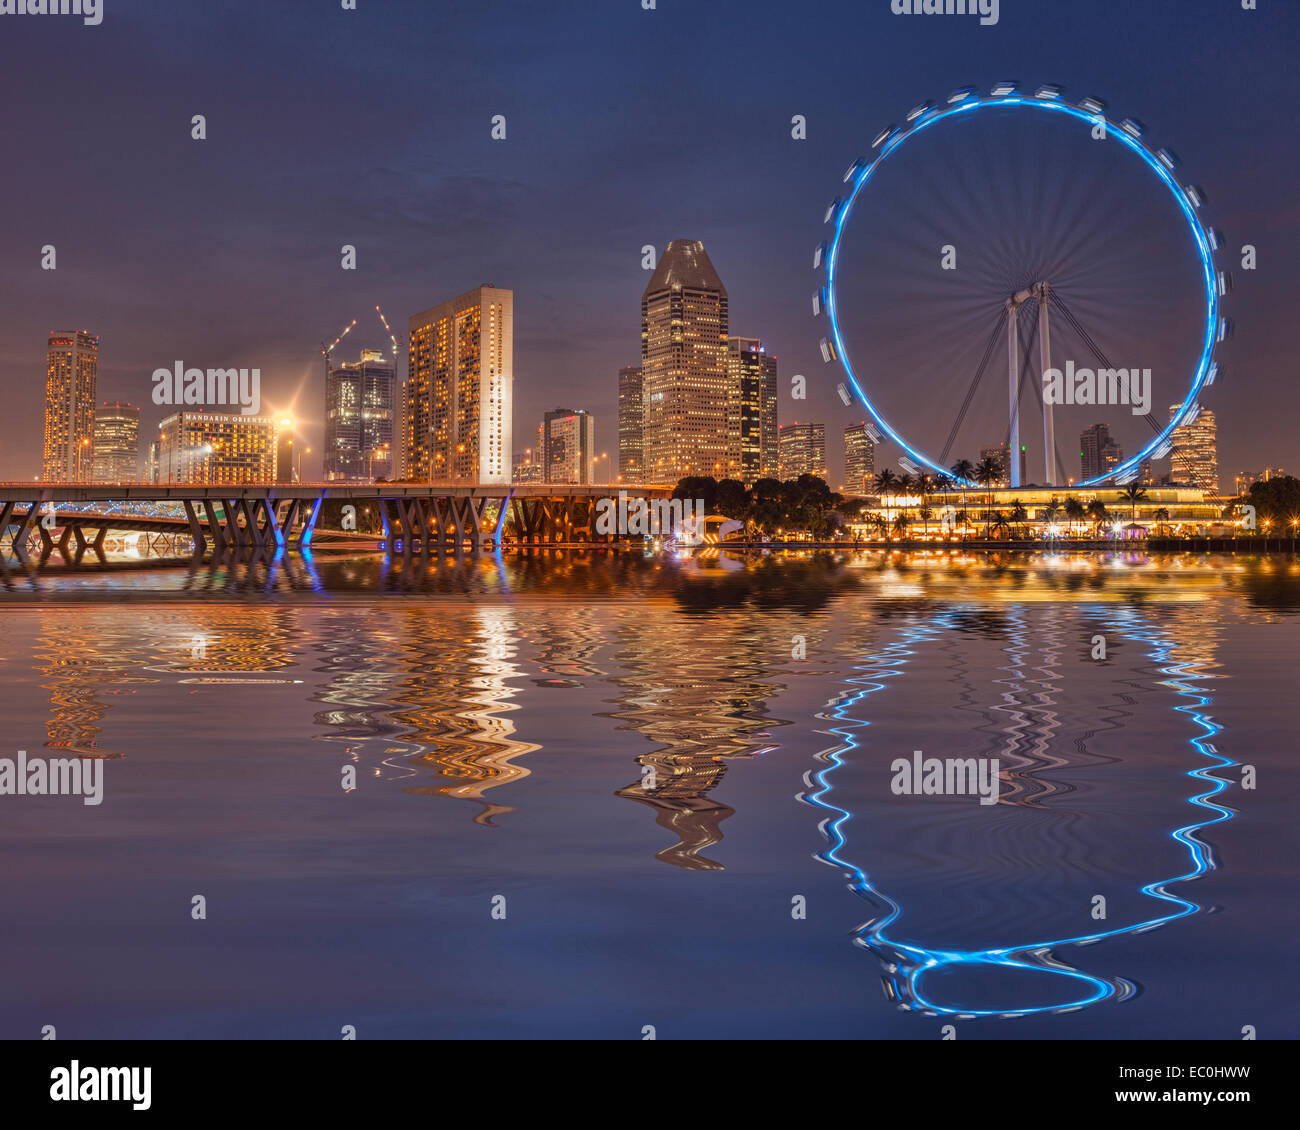 Singapore Flyer and Skyline reflected in the waters of Marina Bay - Stock Image